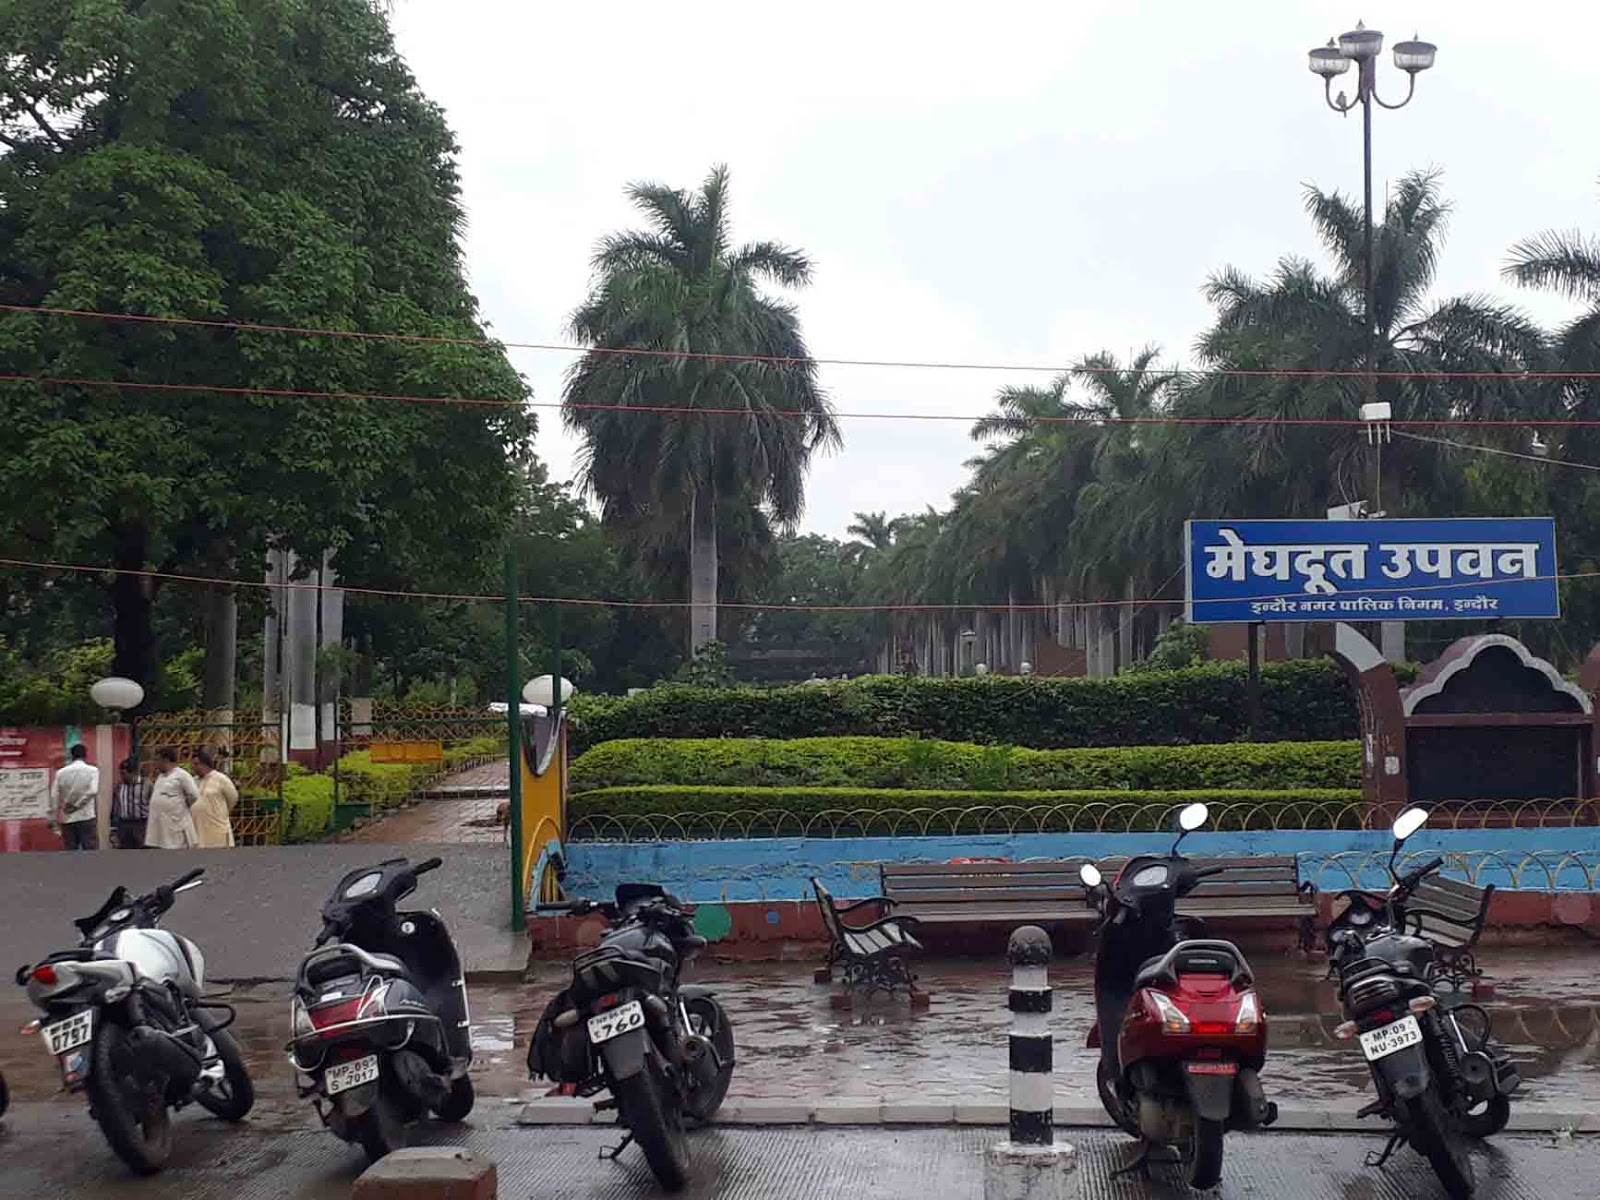 meghdoot garden indore Places to visit near Indore